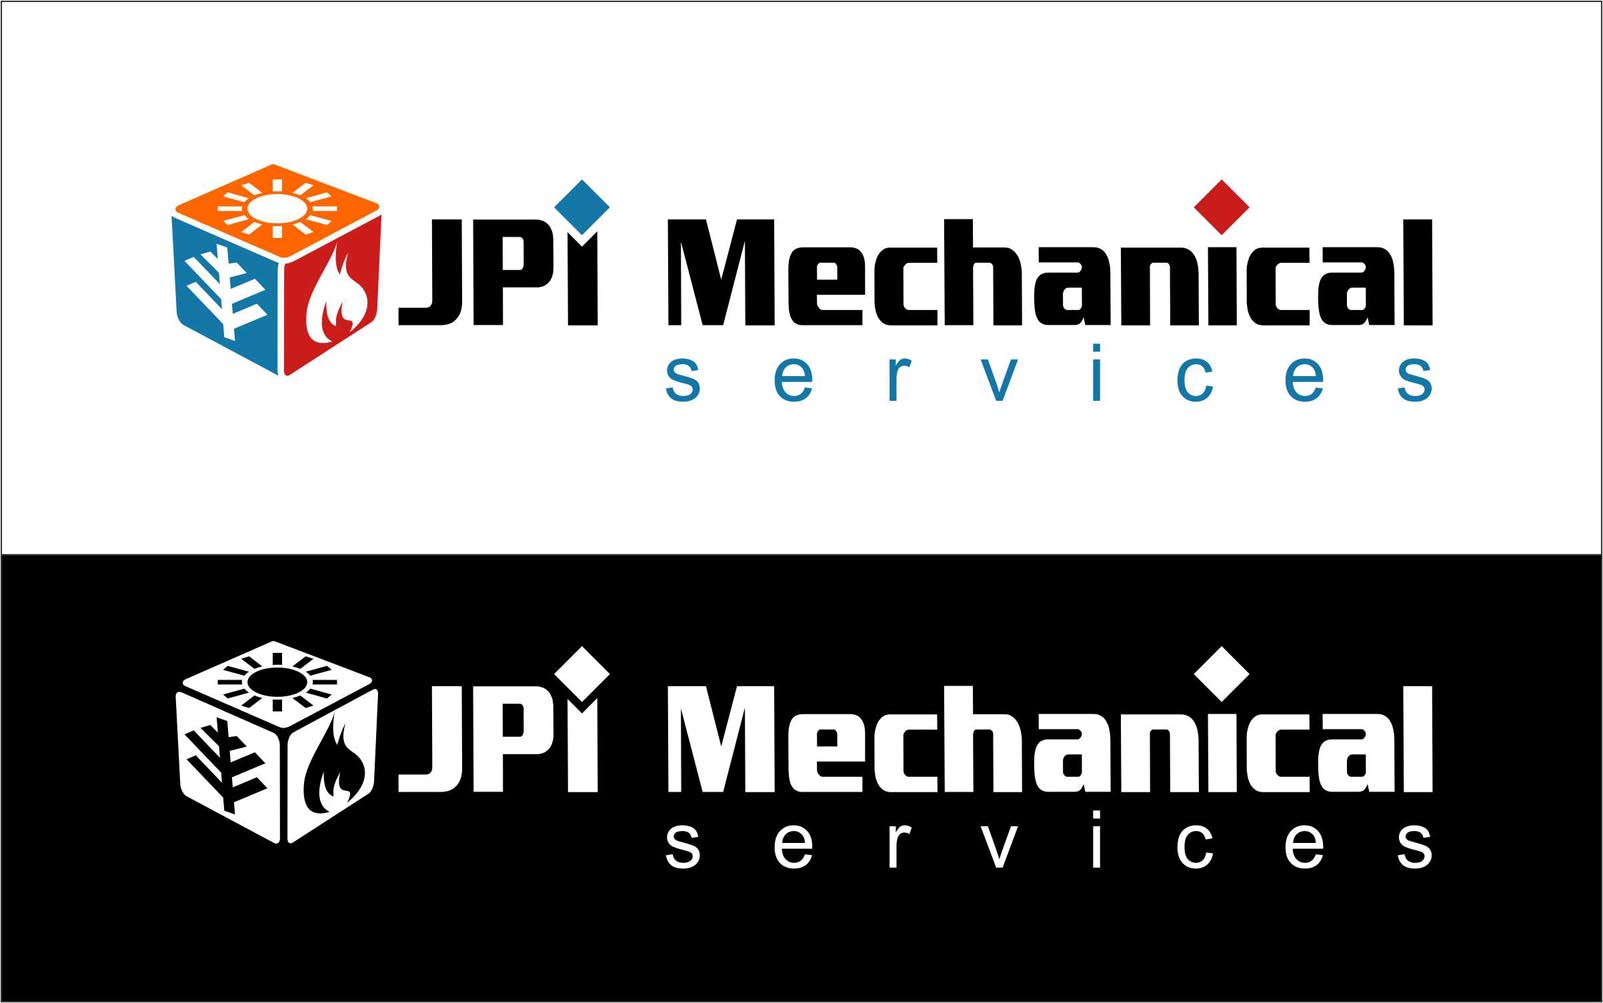 Logo Design by Niraj Dhimmar - Entry No. 111 in the Logo Design Contest Inspiring Logo Design for JPI Mecanical Services.